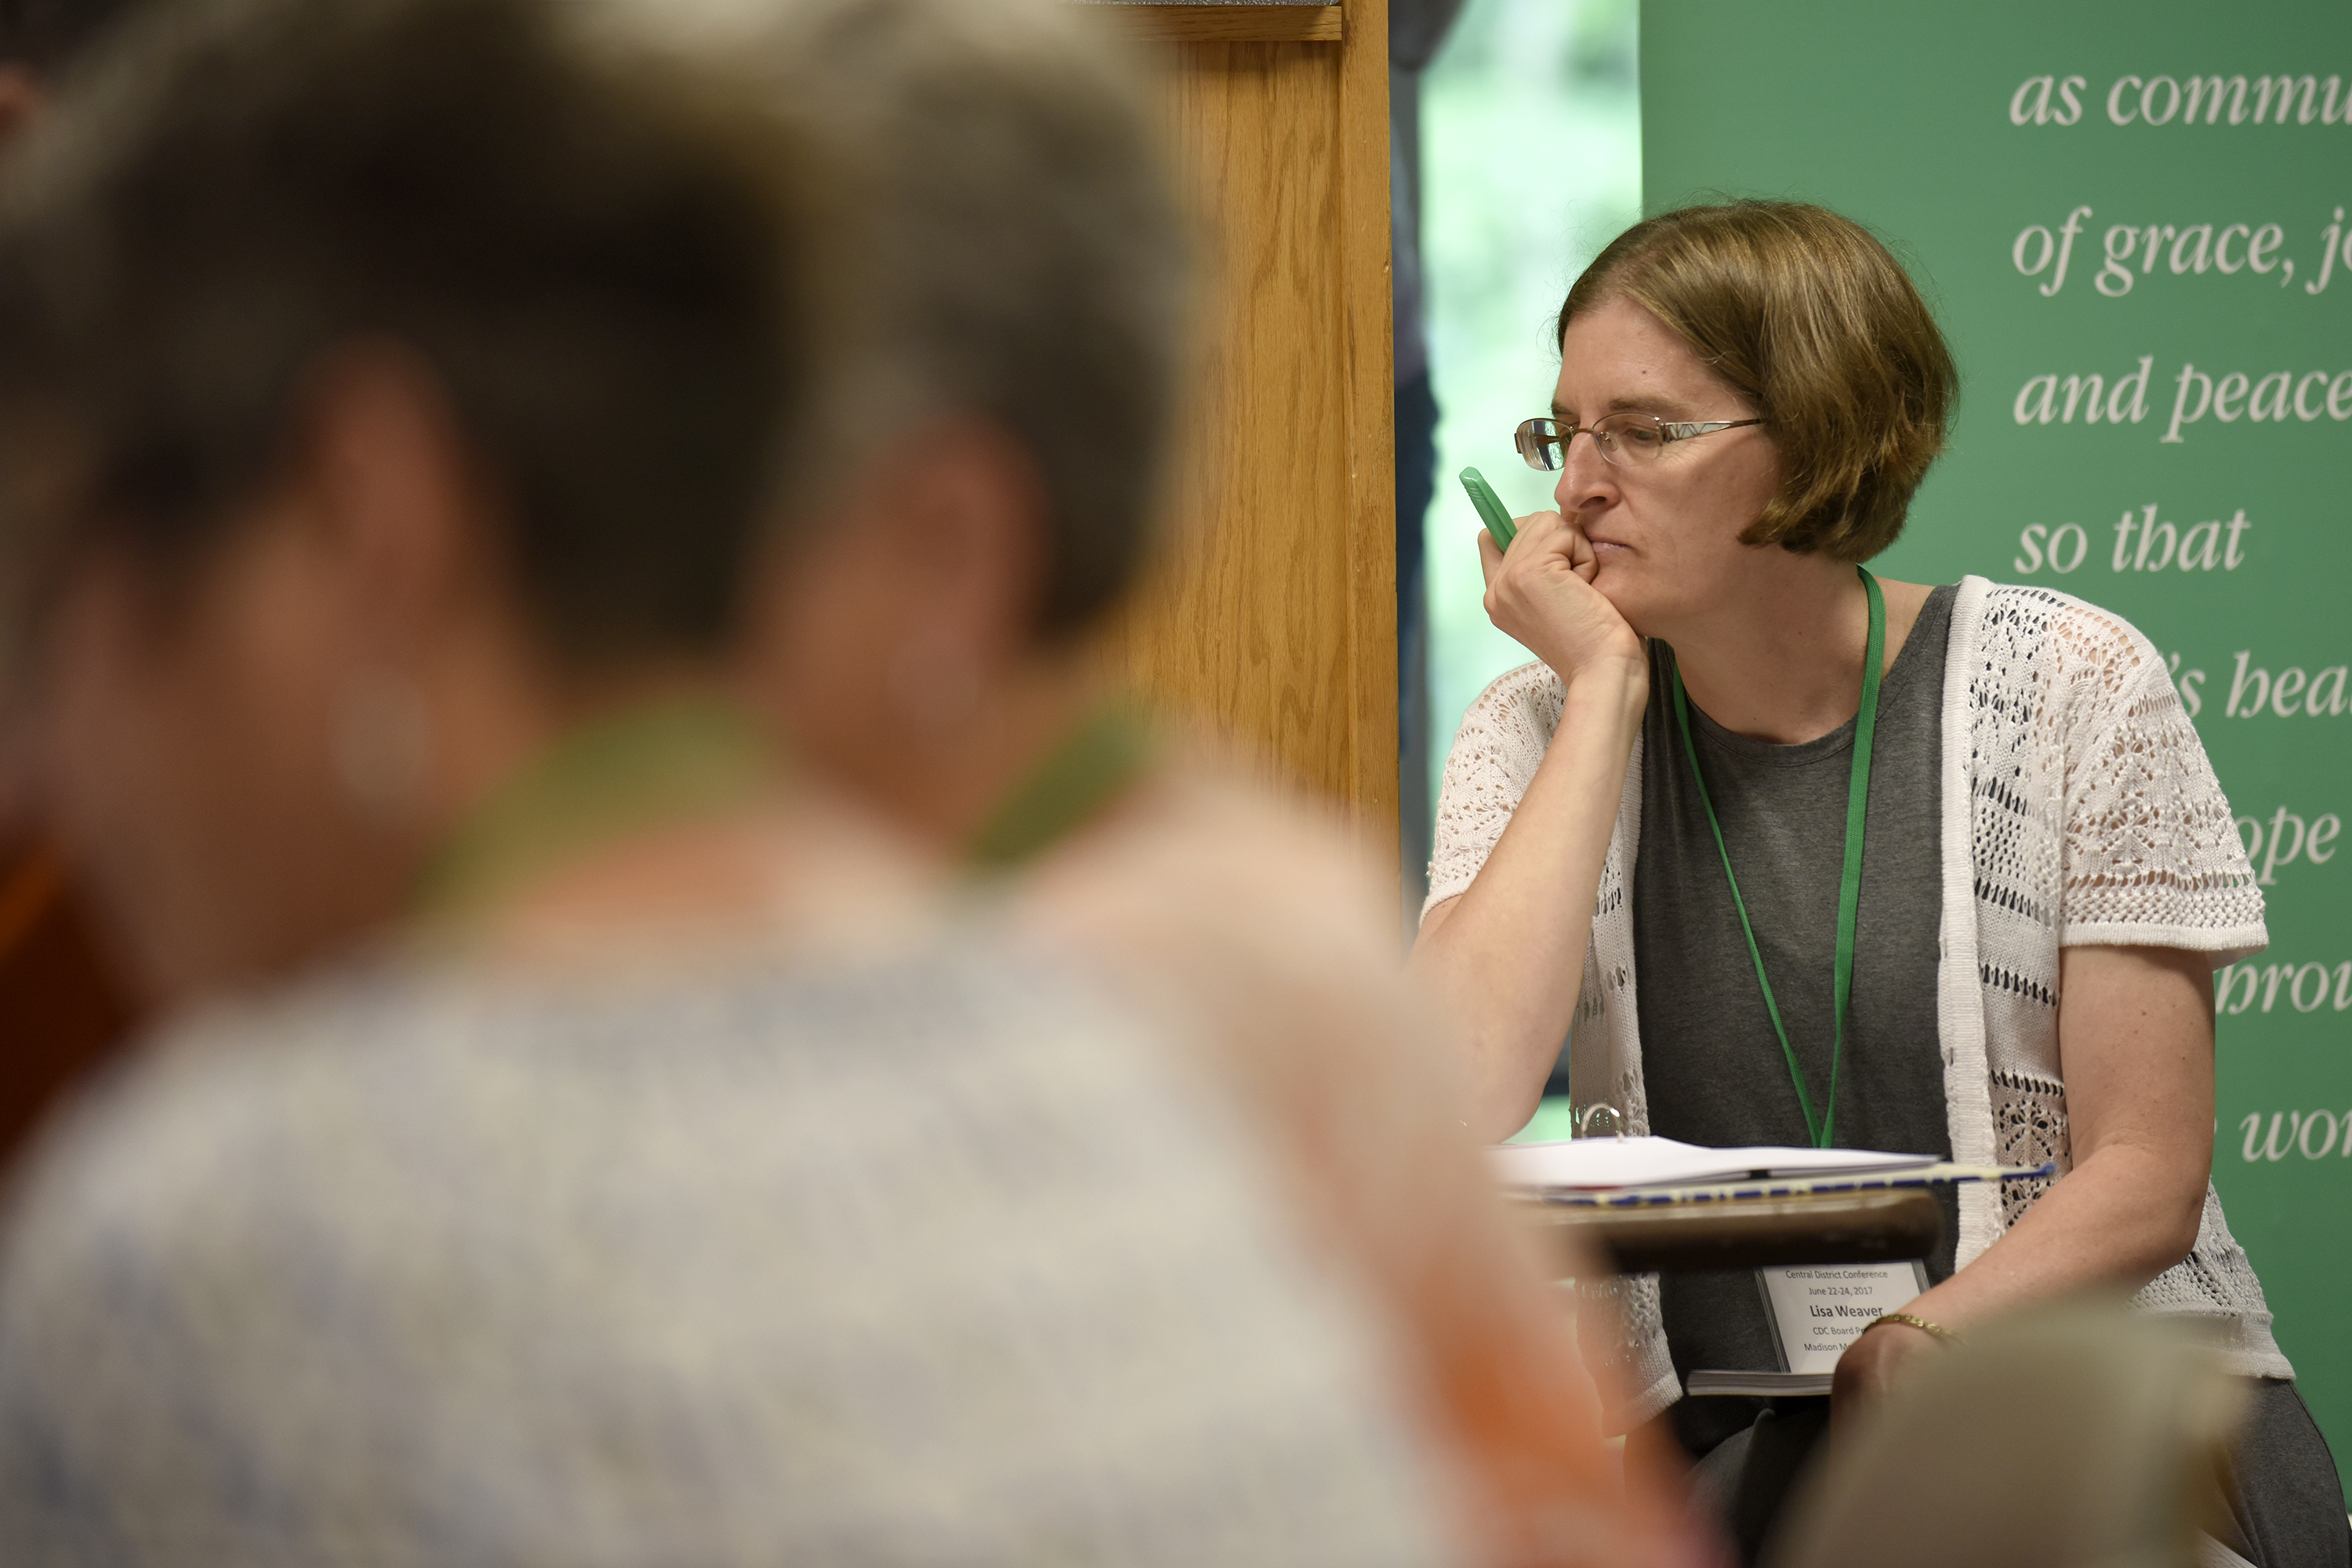 Central District Conference president Lisa Weaver listens during Friday morning sessions at Central District Conference, Friday, June 23, 2017, at Bluffton University, Bluffton, OH. Weaver ended her two-year term as president at the end of the meeting. Photograph by J. Tyler Klassen